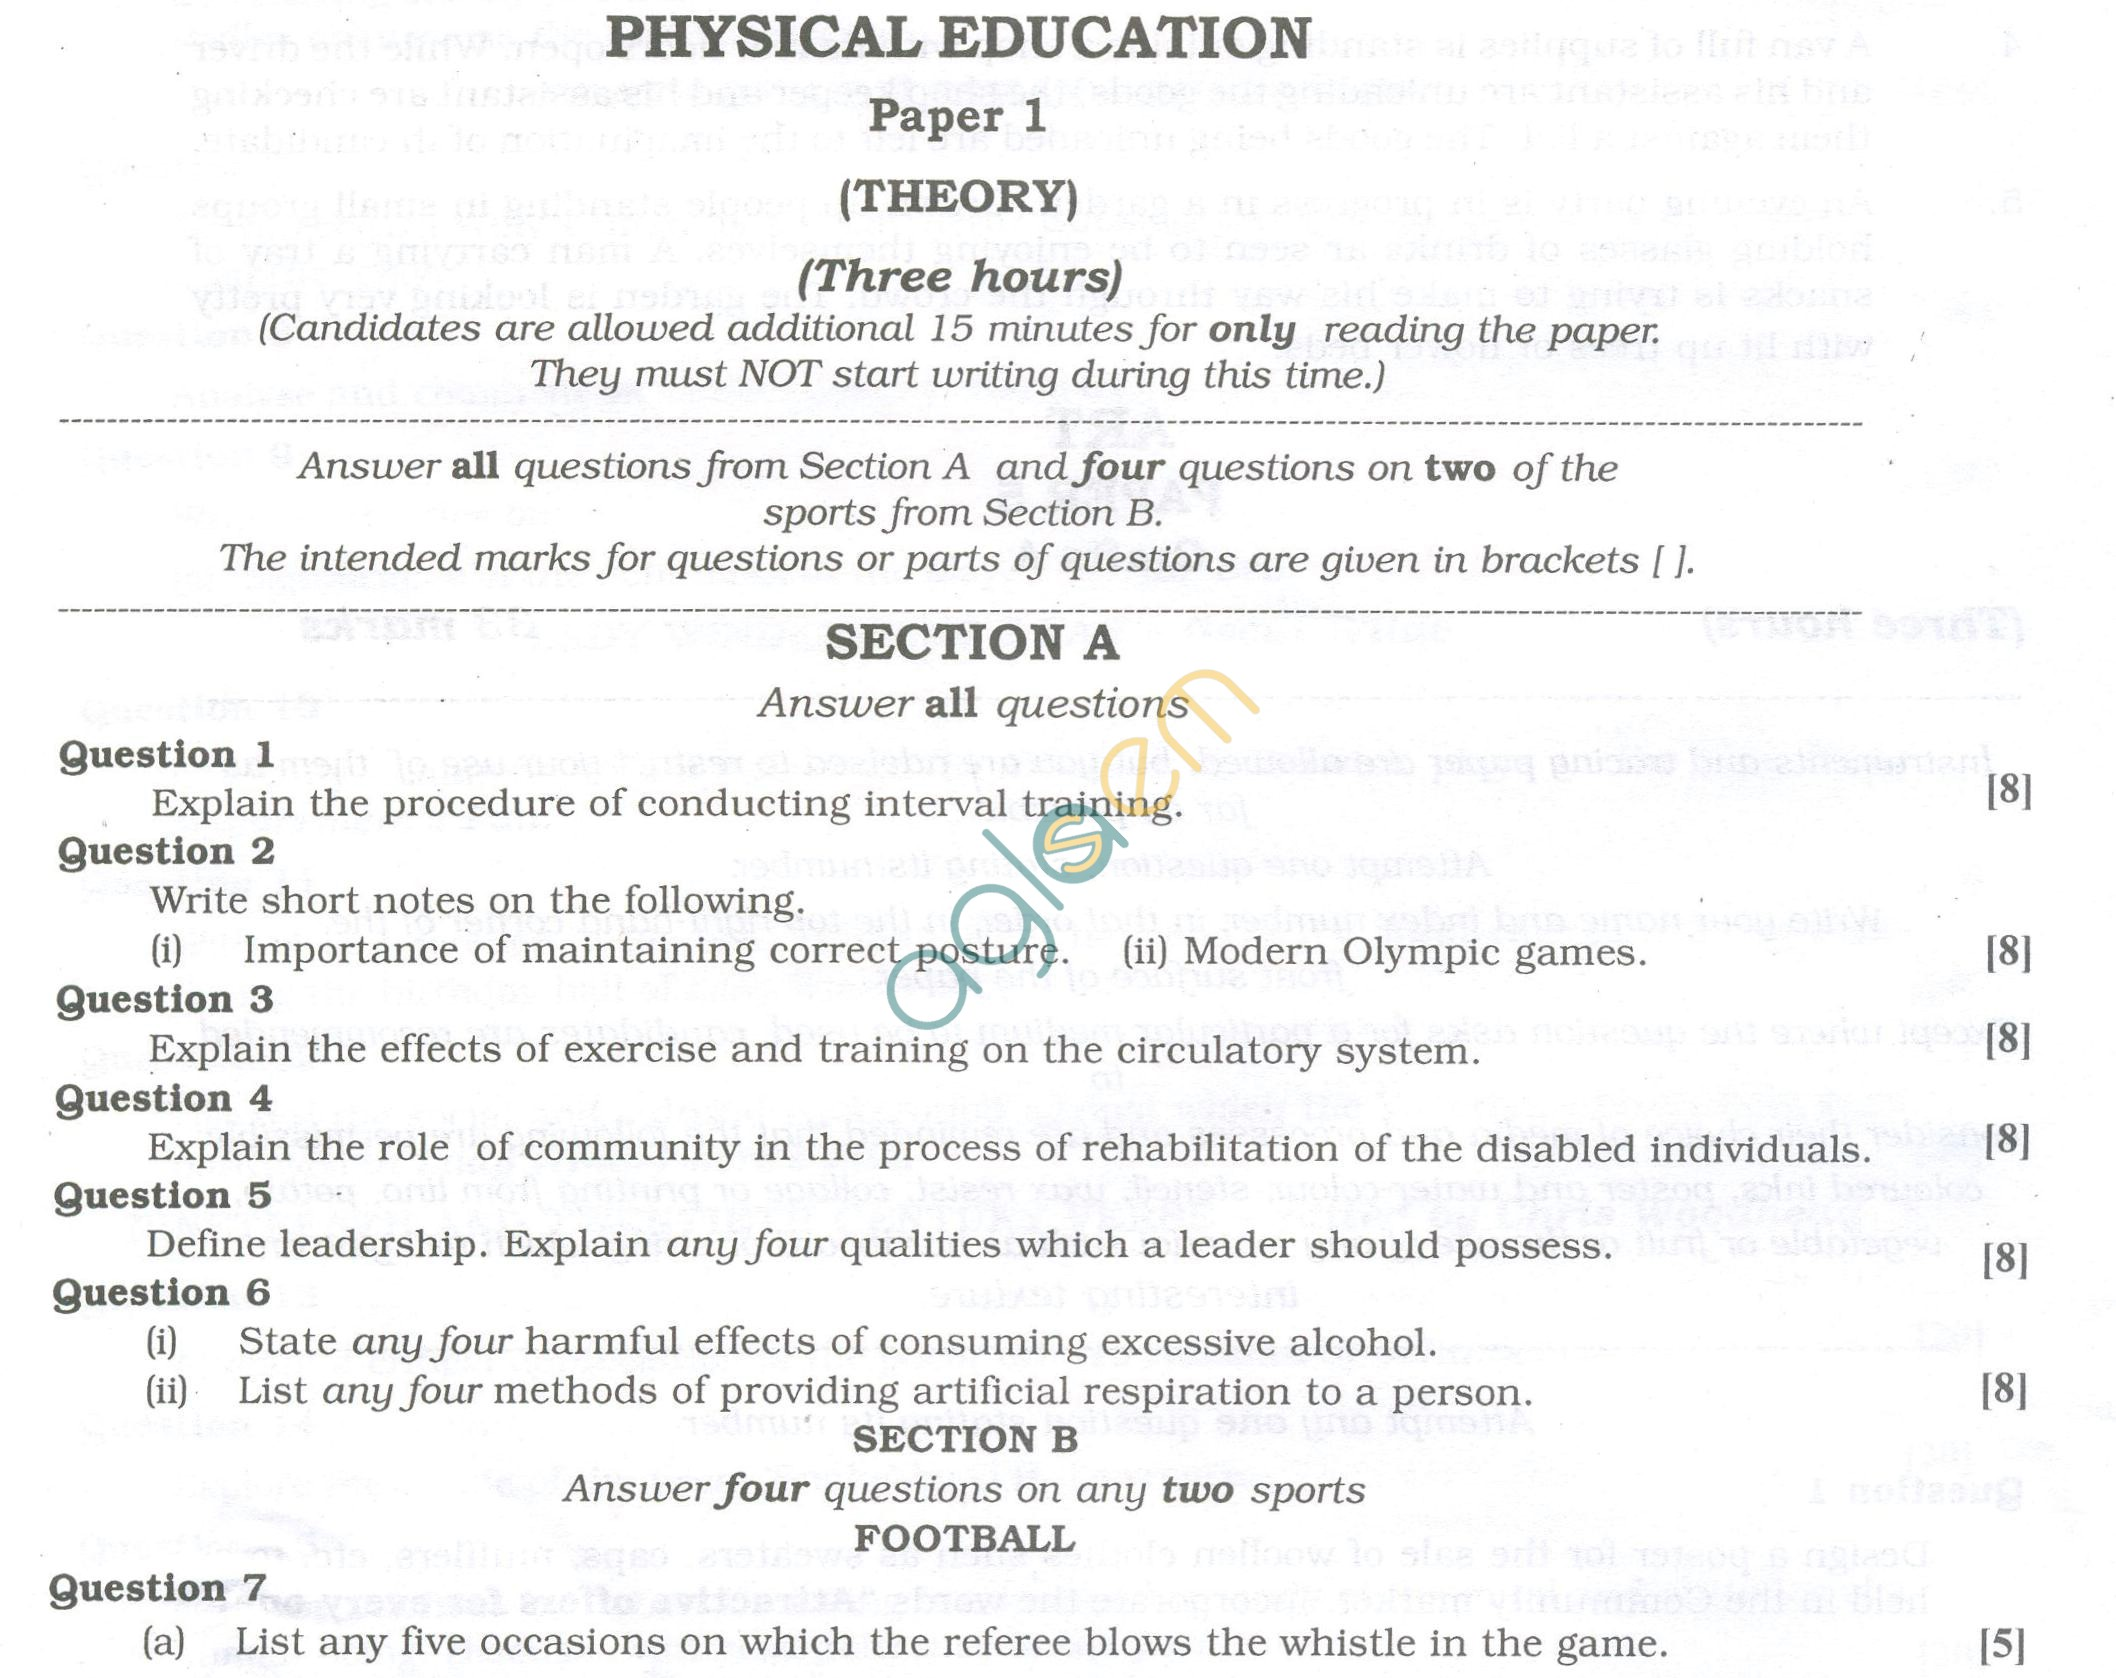 Isc question papers 2013 for class 12 physical education aglasem isc question papers 2013 for class 12 physical education malvernweather